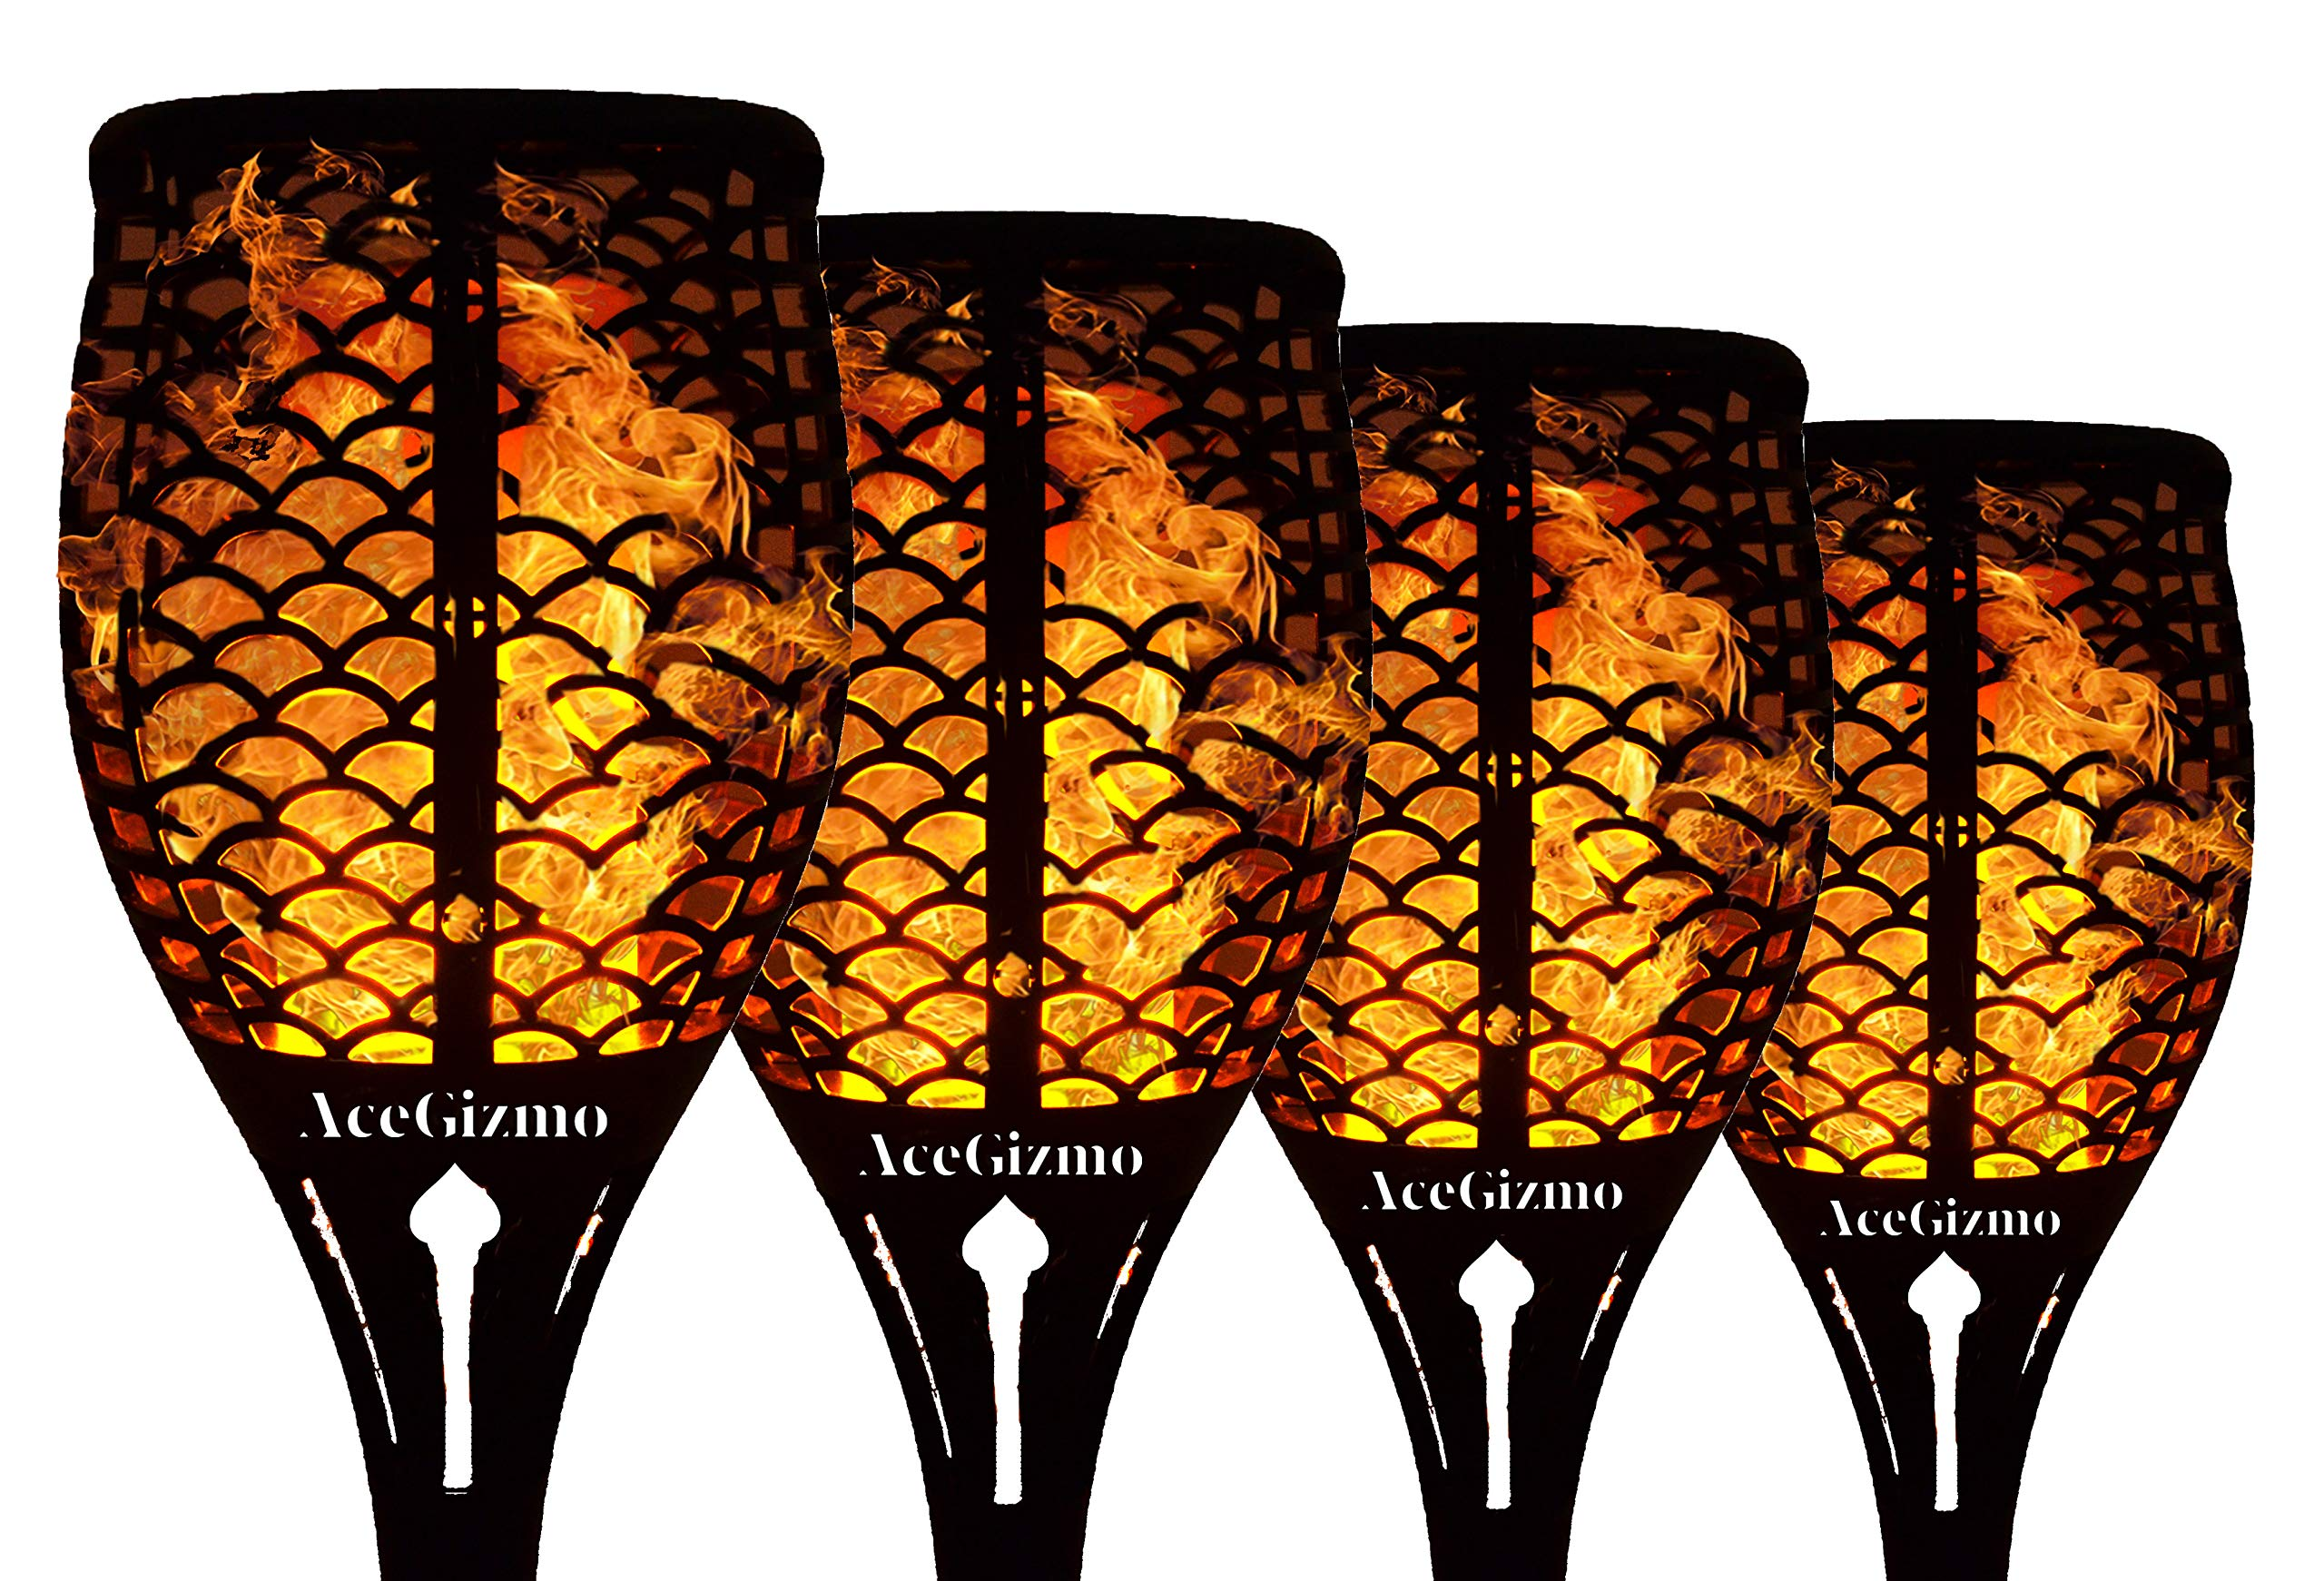 AceGizmo Solar Torch Lights [Upgraded]- 4 Pack. Waterproof Flickering Flame Torches Dancing Flames Landscape Decoration Lighting Dusk to Dawn Outdoor Path Light for Garden Patio Deck Yard Driveway